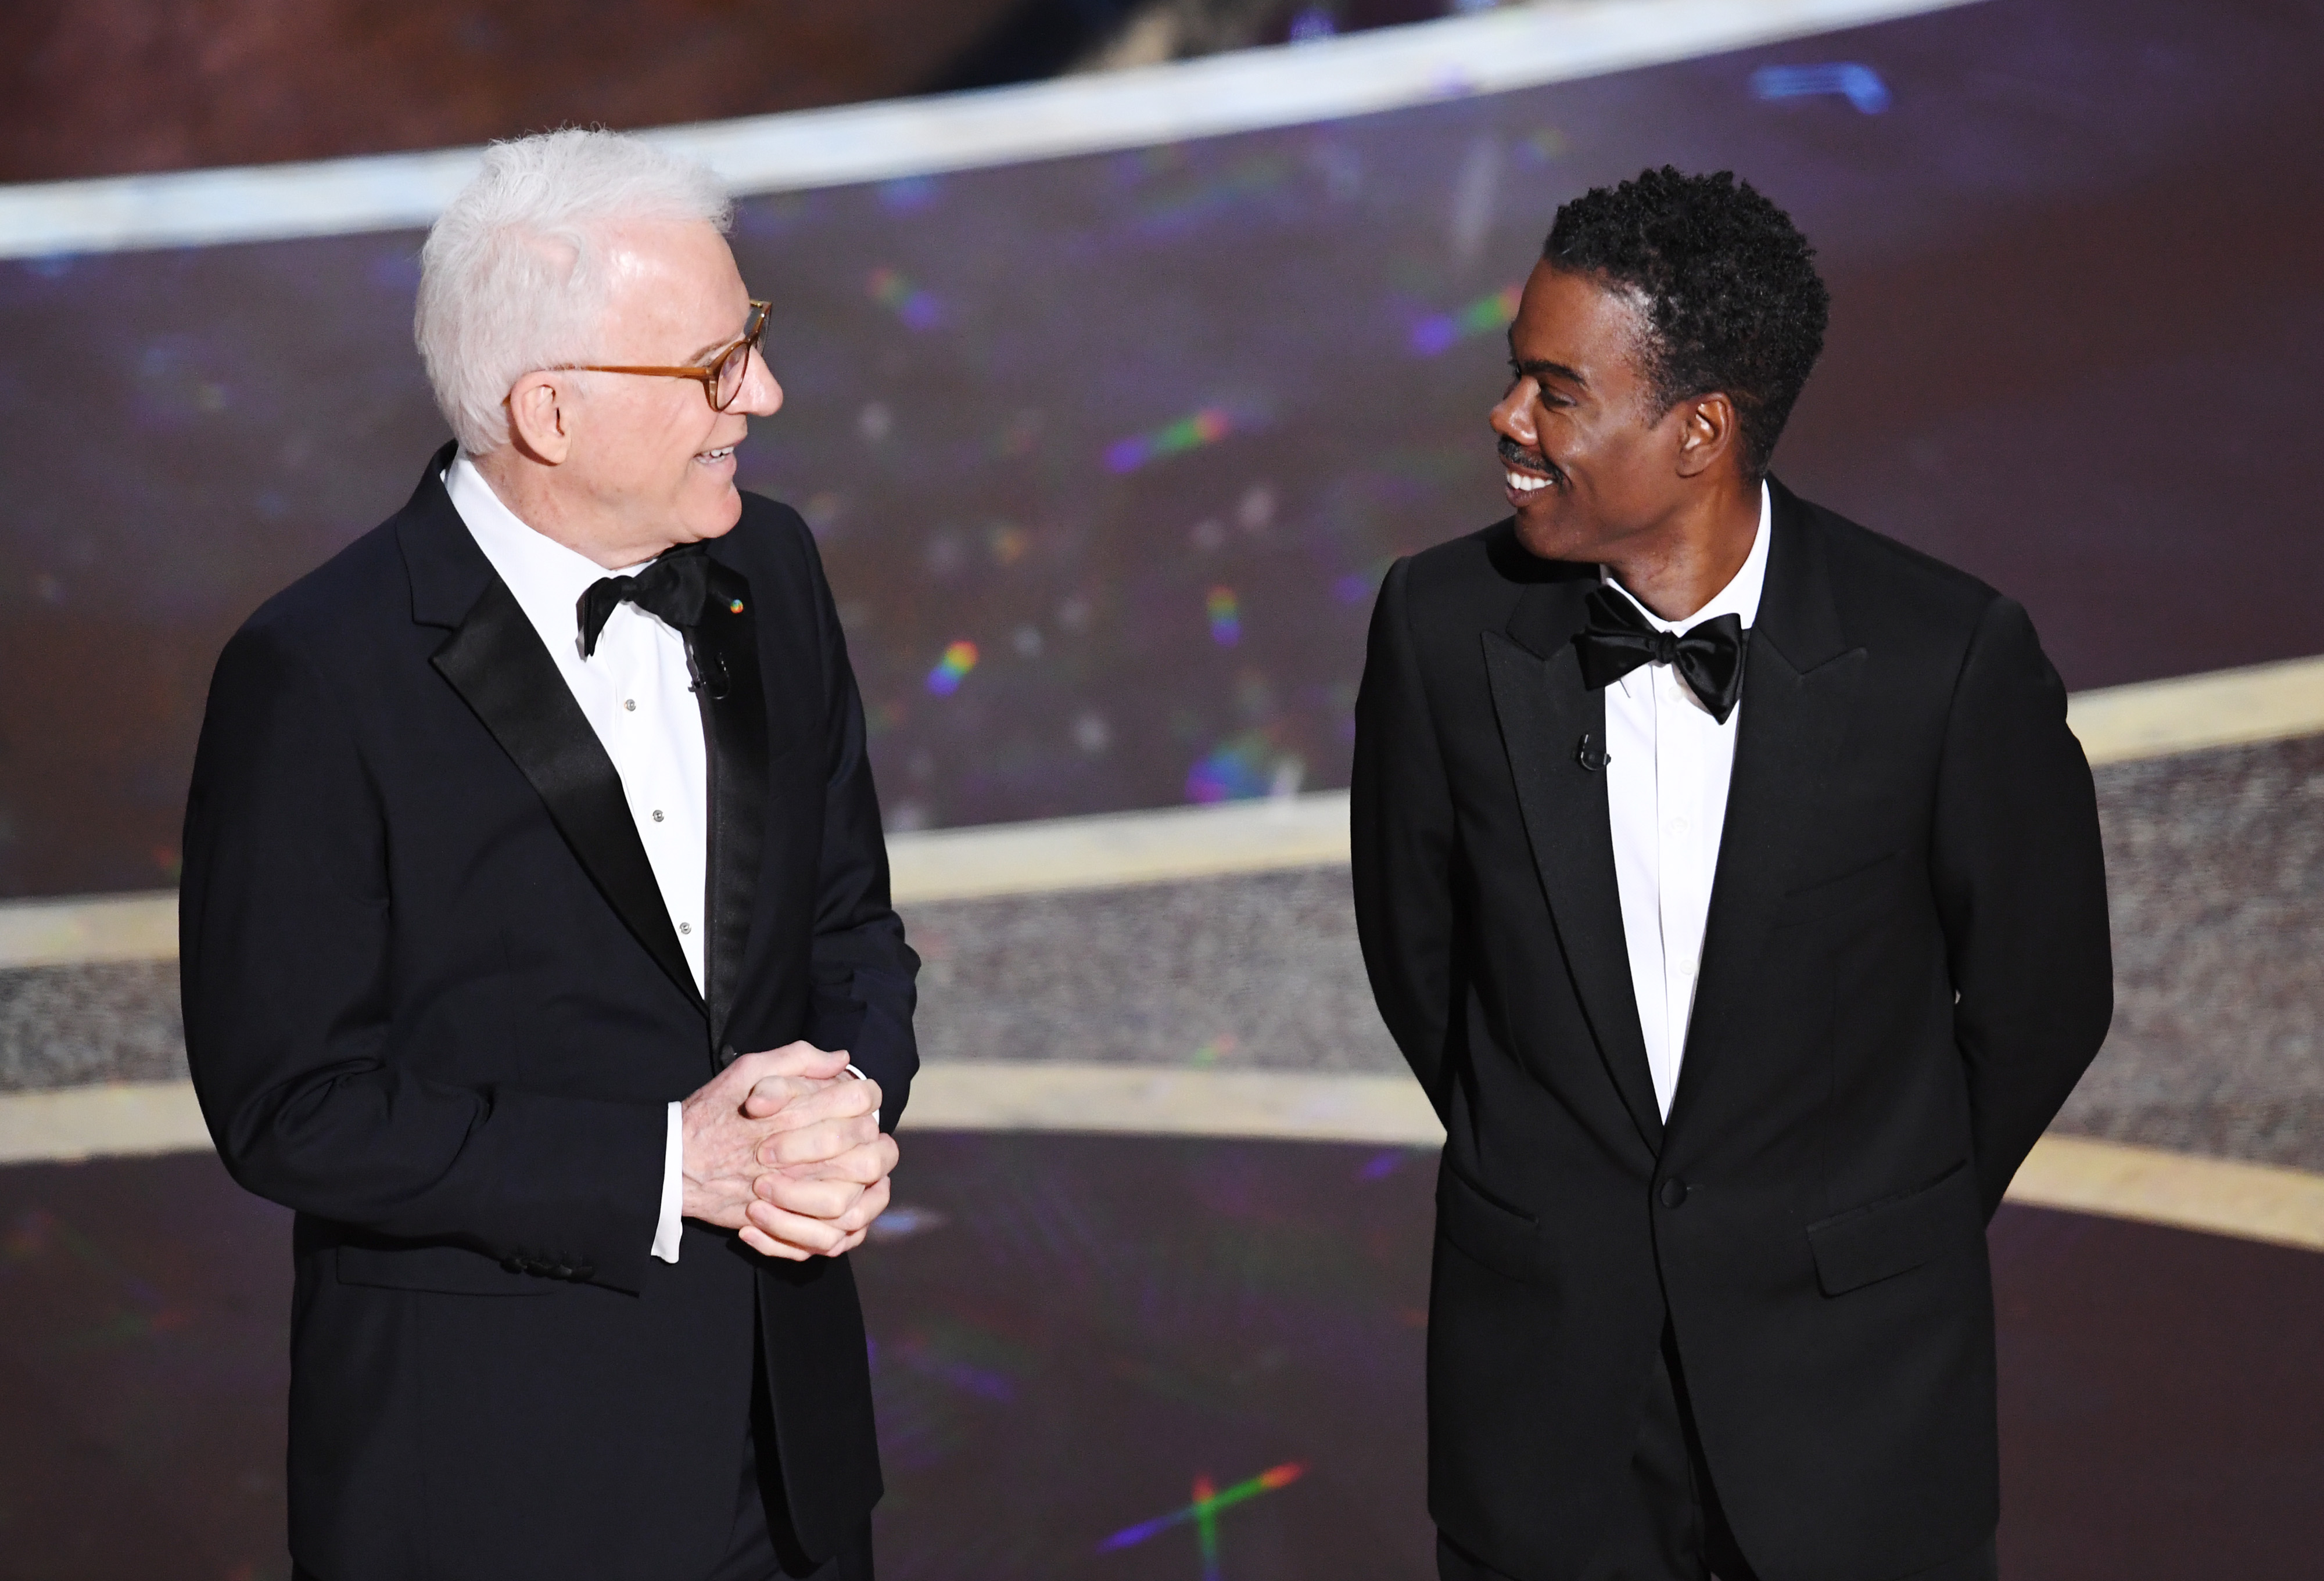 HOLLYWOOD, Steve Martin and Chris Rock onstage during the 92nd Annual Academy Awards on February 09, 2020 in Hollywood, California.